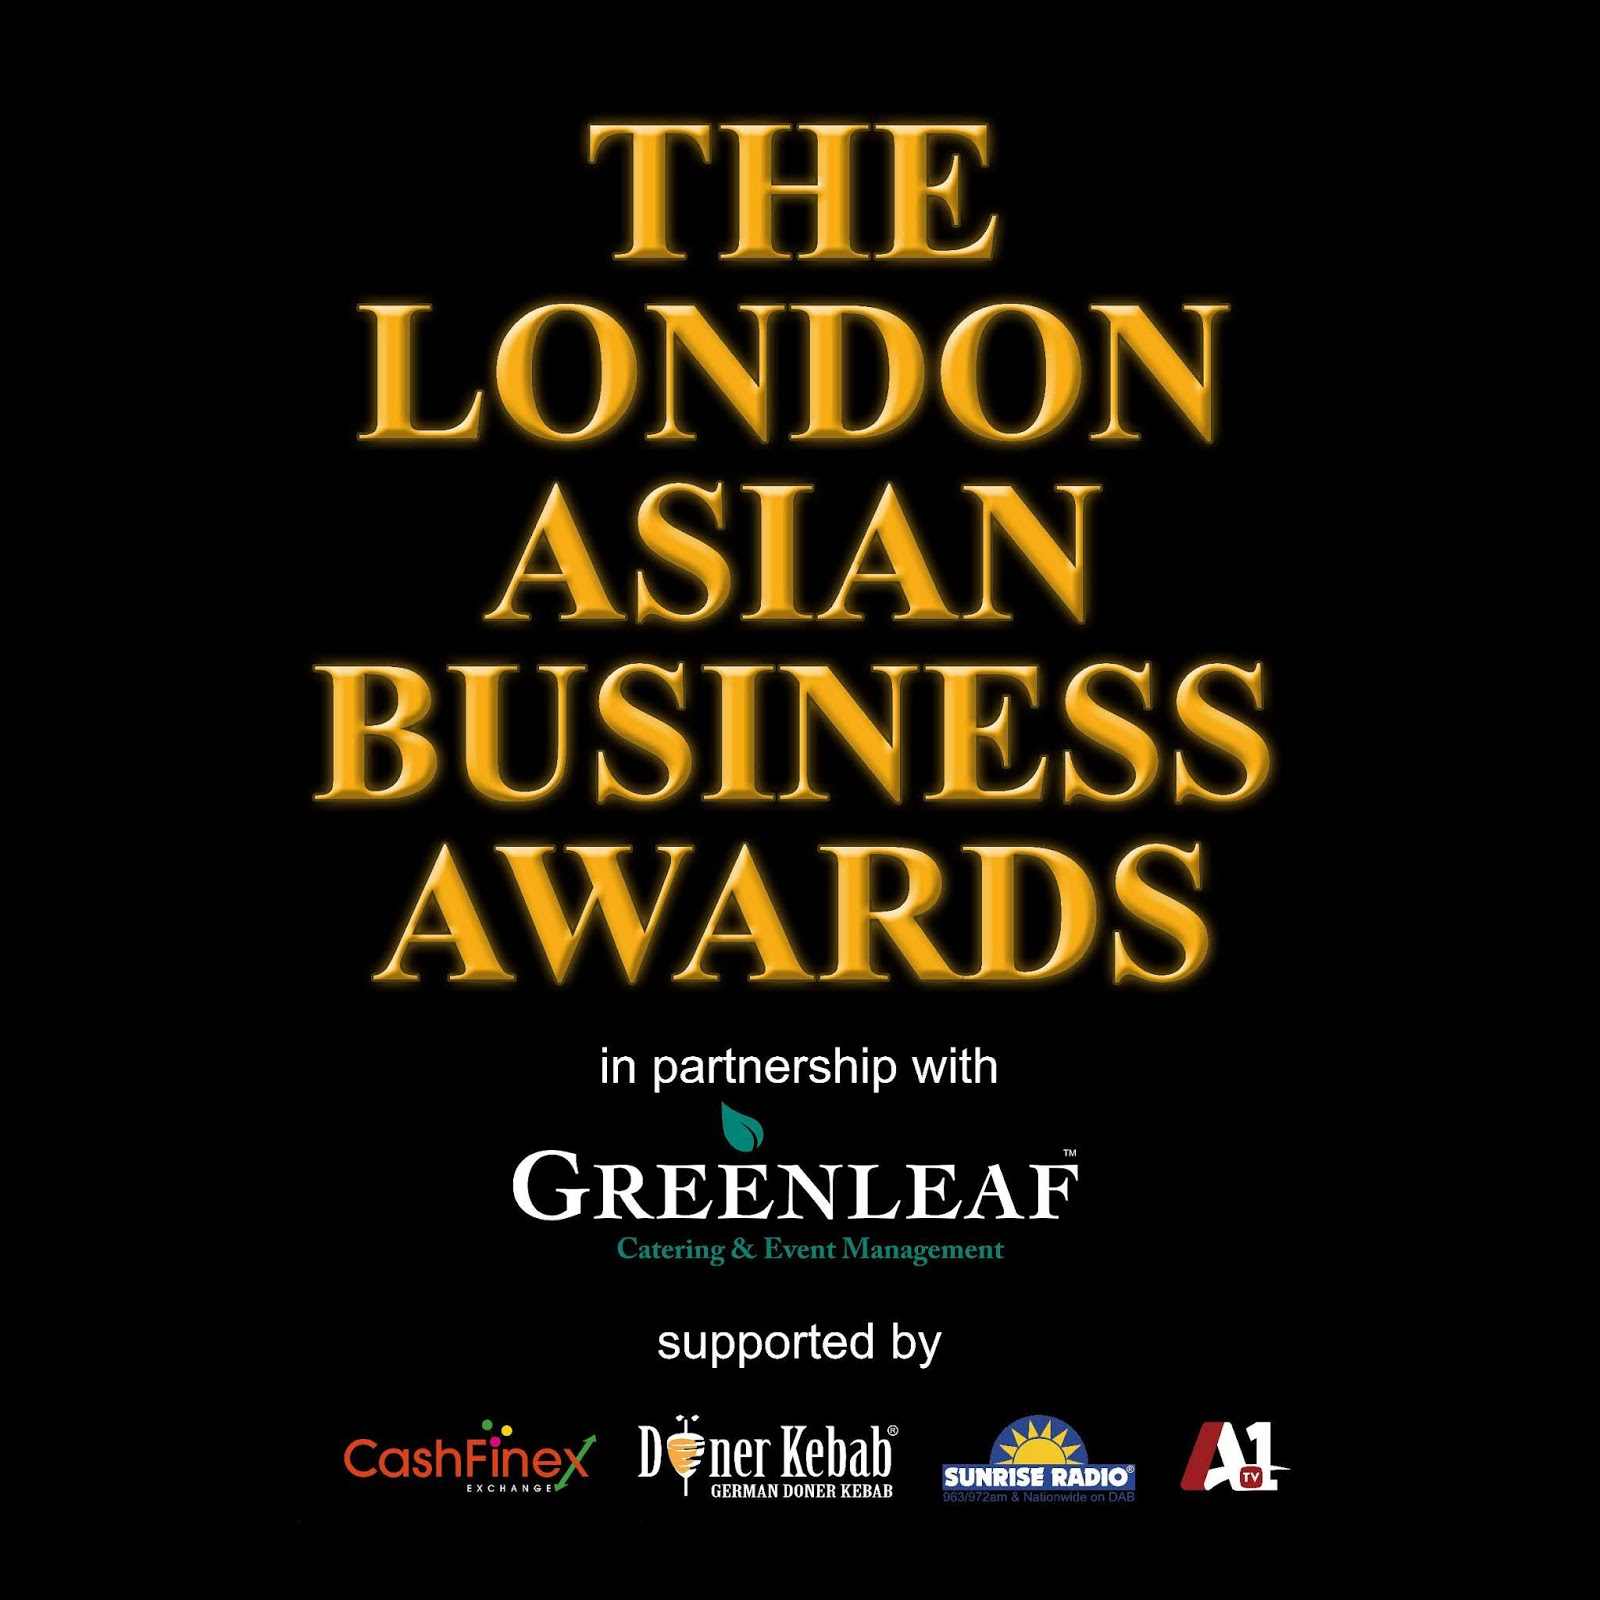 6a9b0ac3cac Finalists for the second London Asian Business Award have been revealed  after nominations came pouring in from London to celebrate the achievements  and ...